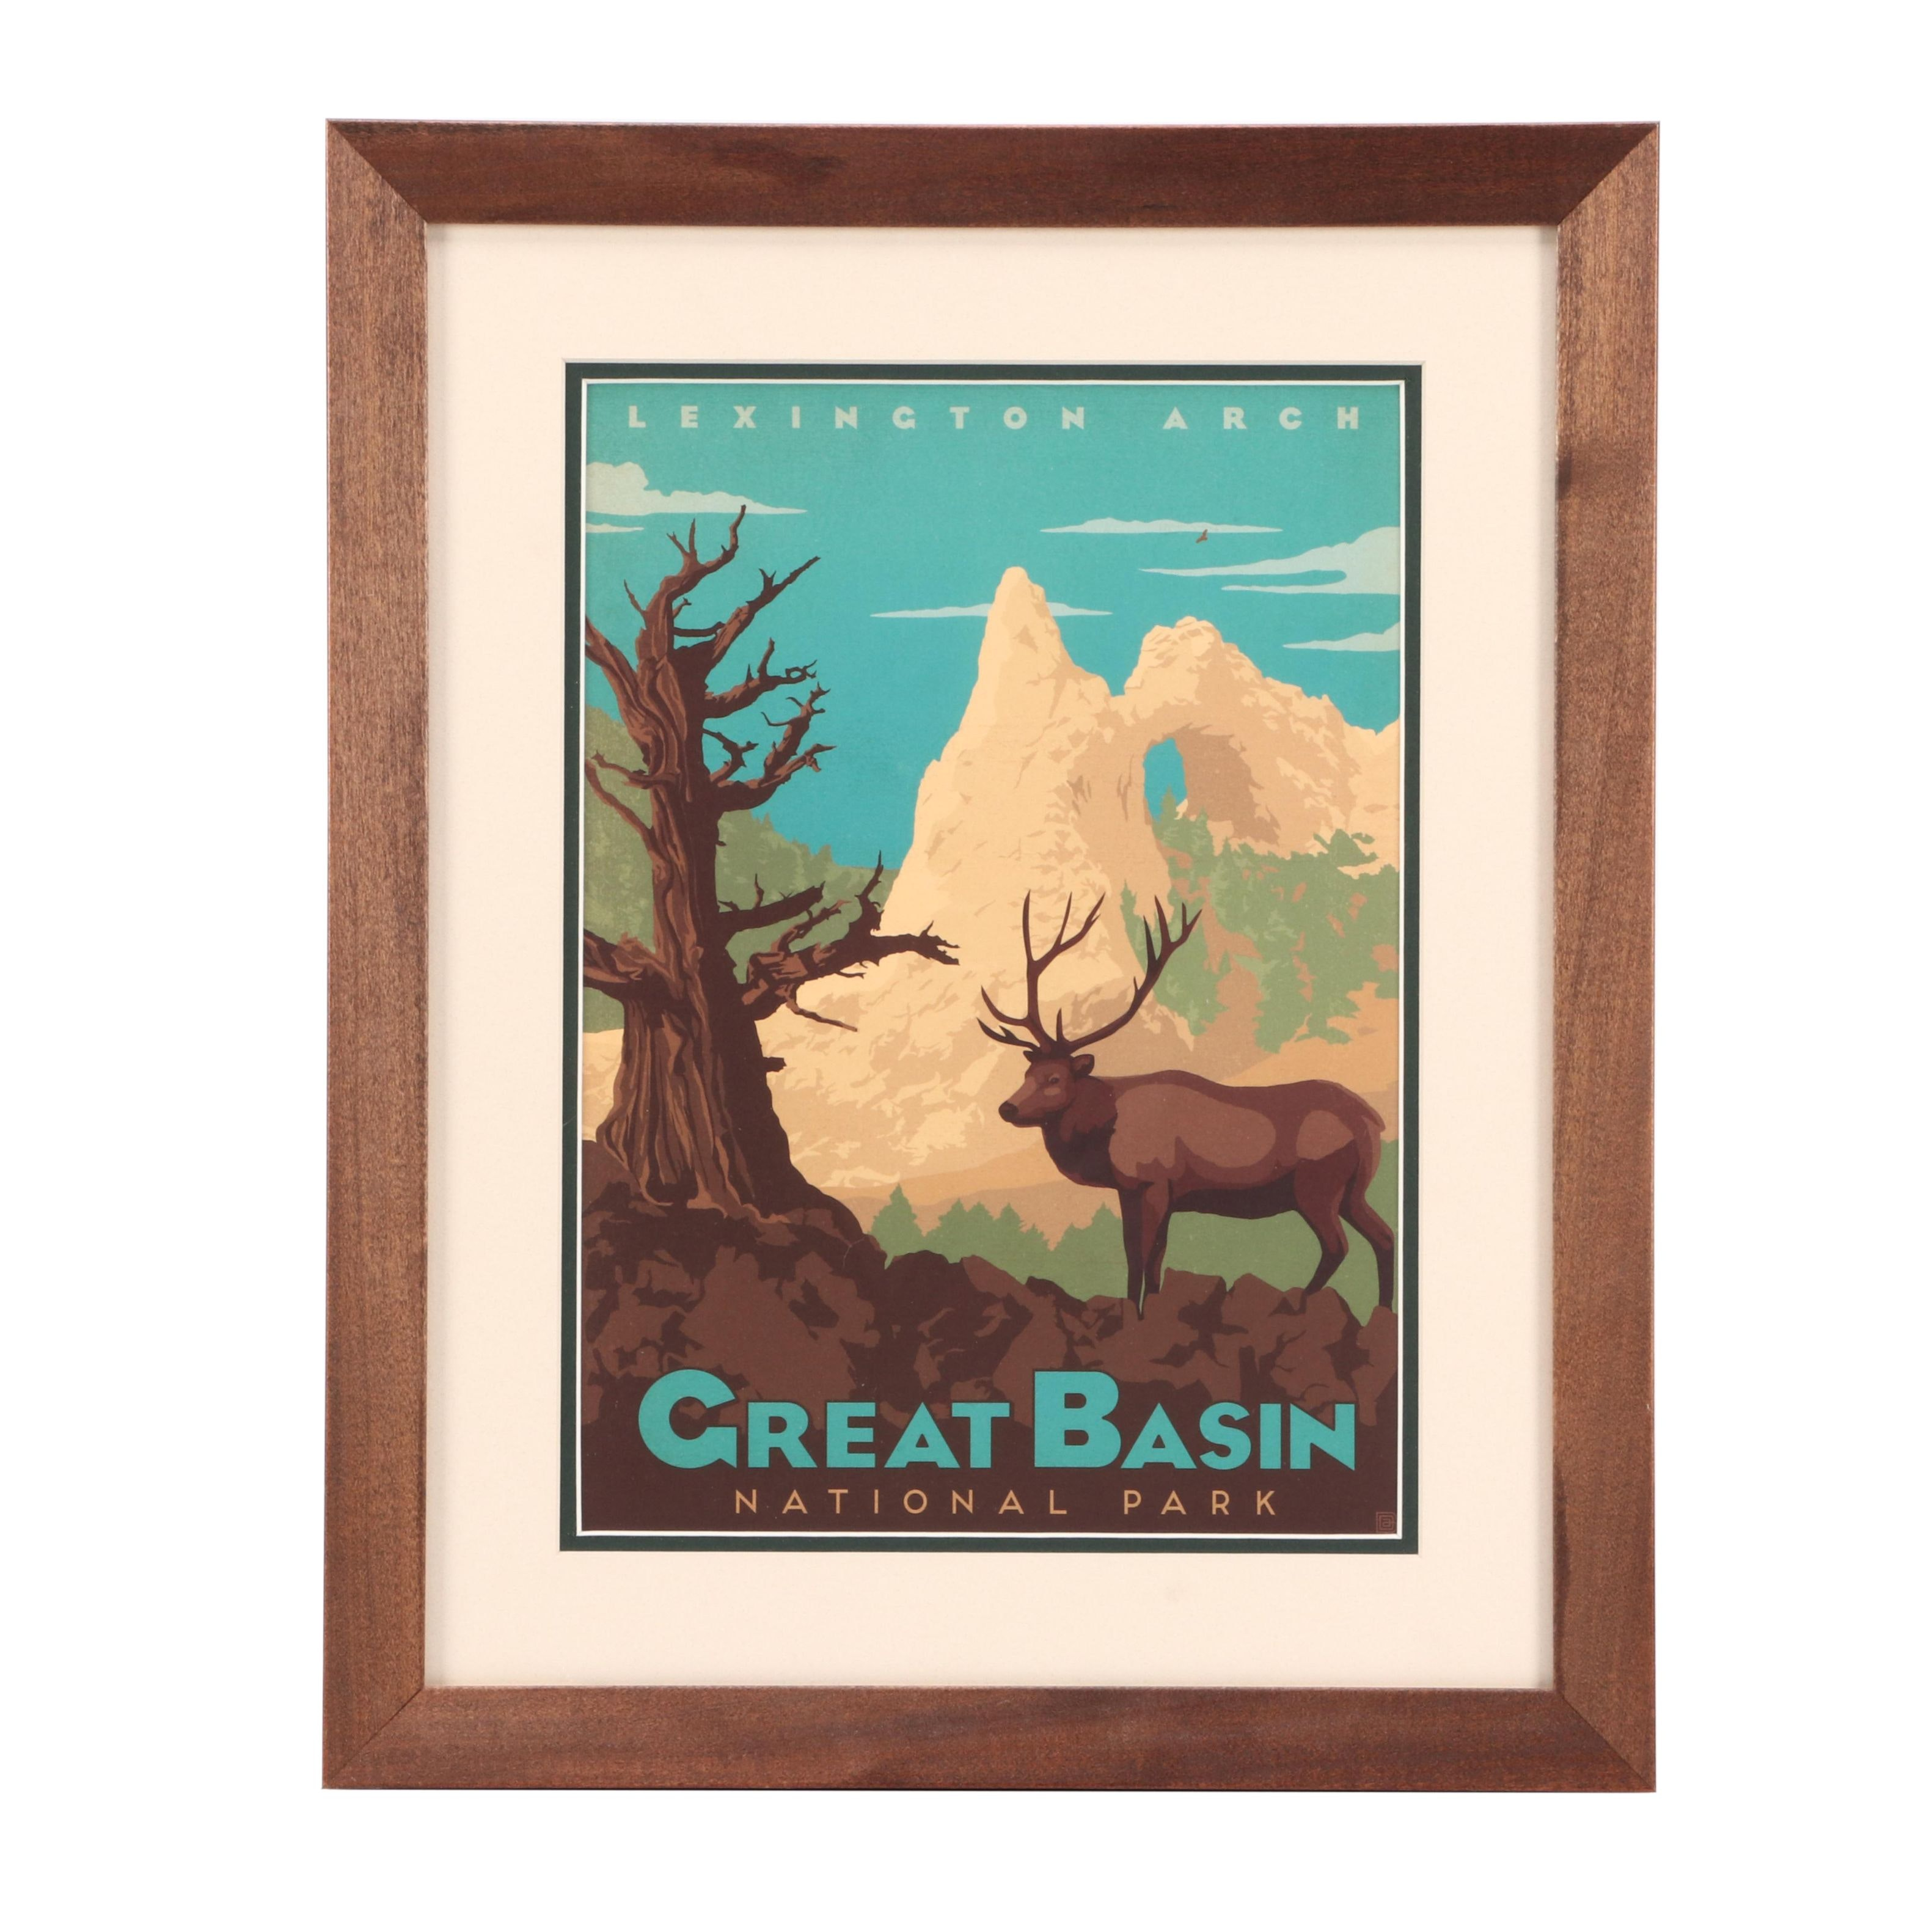 Vintage-Style Offset Lithograph Great Basin National Park Travel Poster